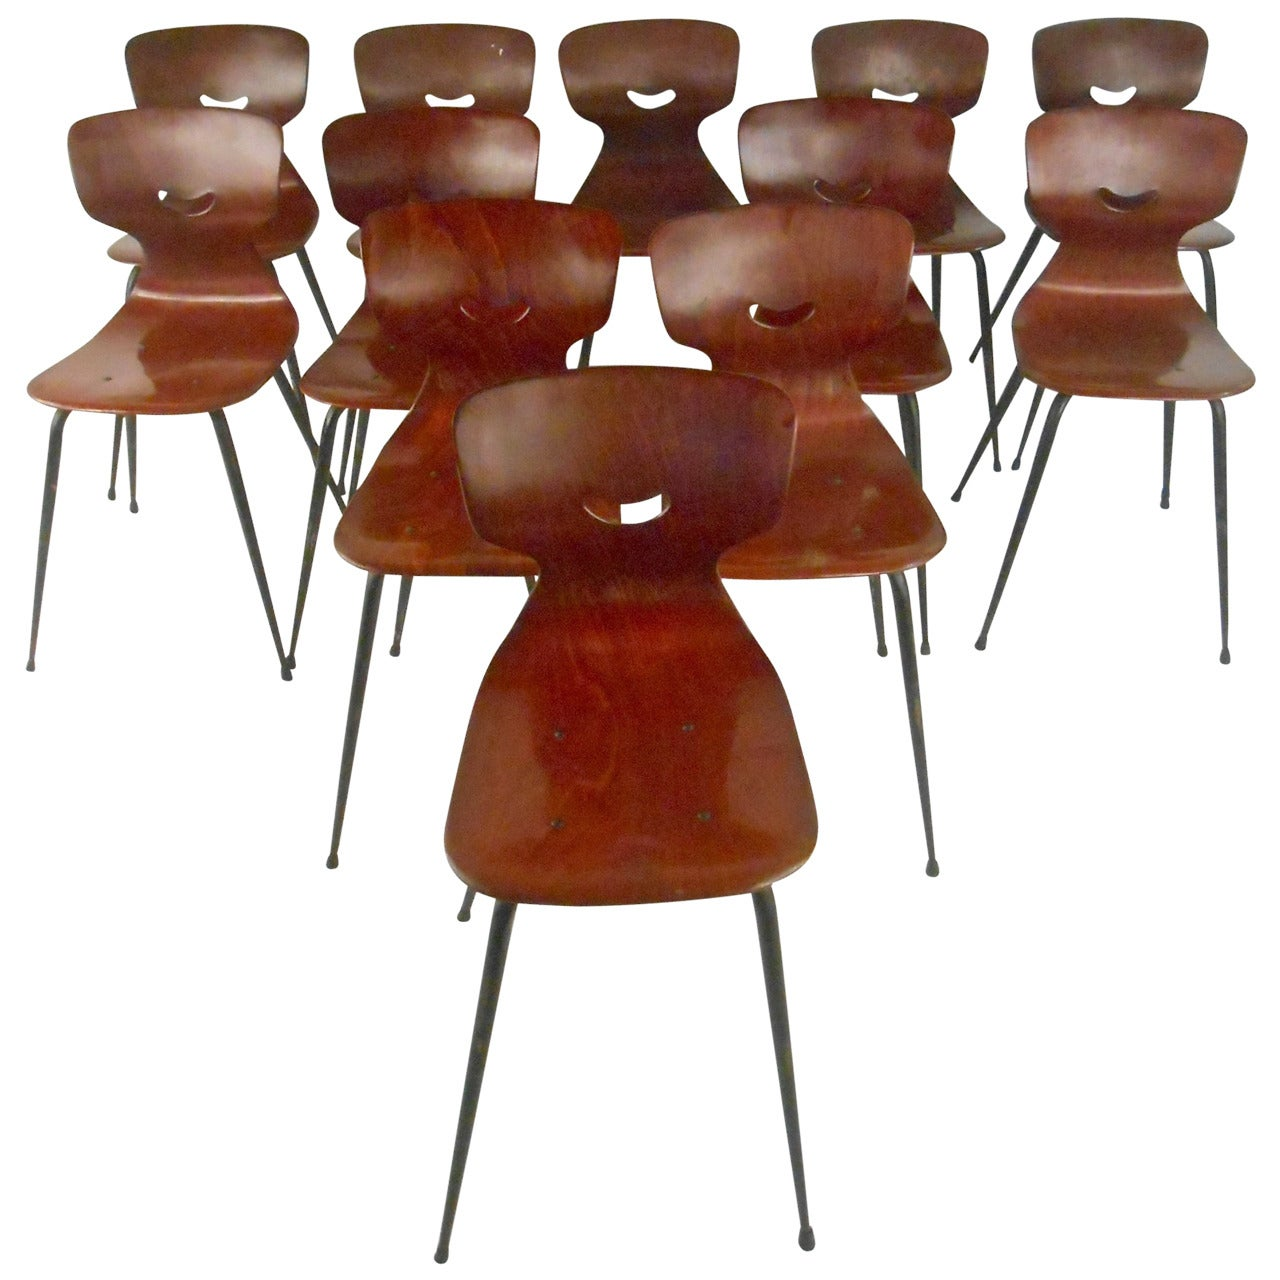 Five Adam Stegner Sculpted Dining Chairs for Pagholz Flötotto